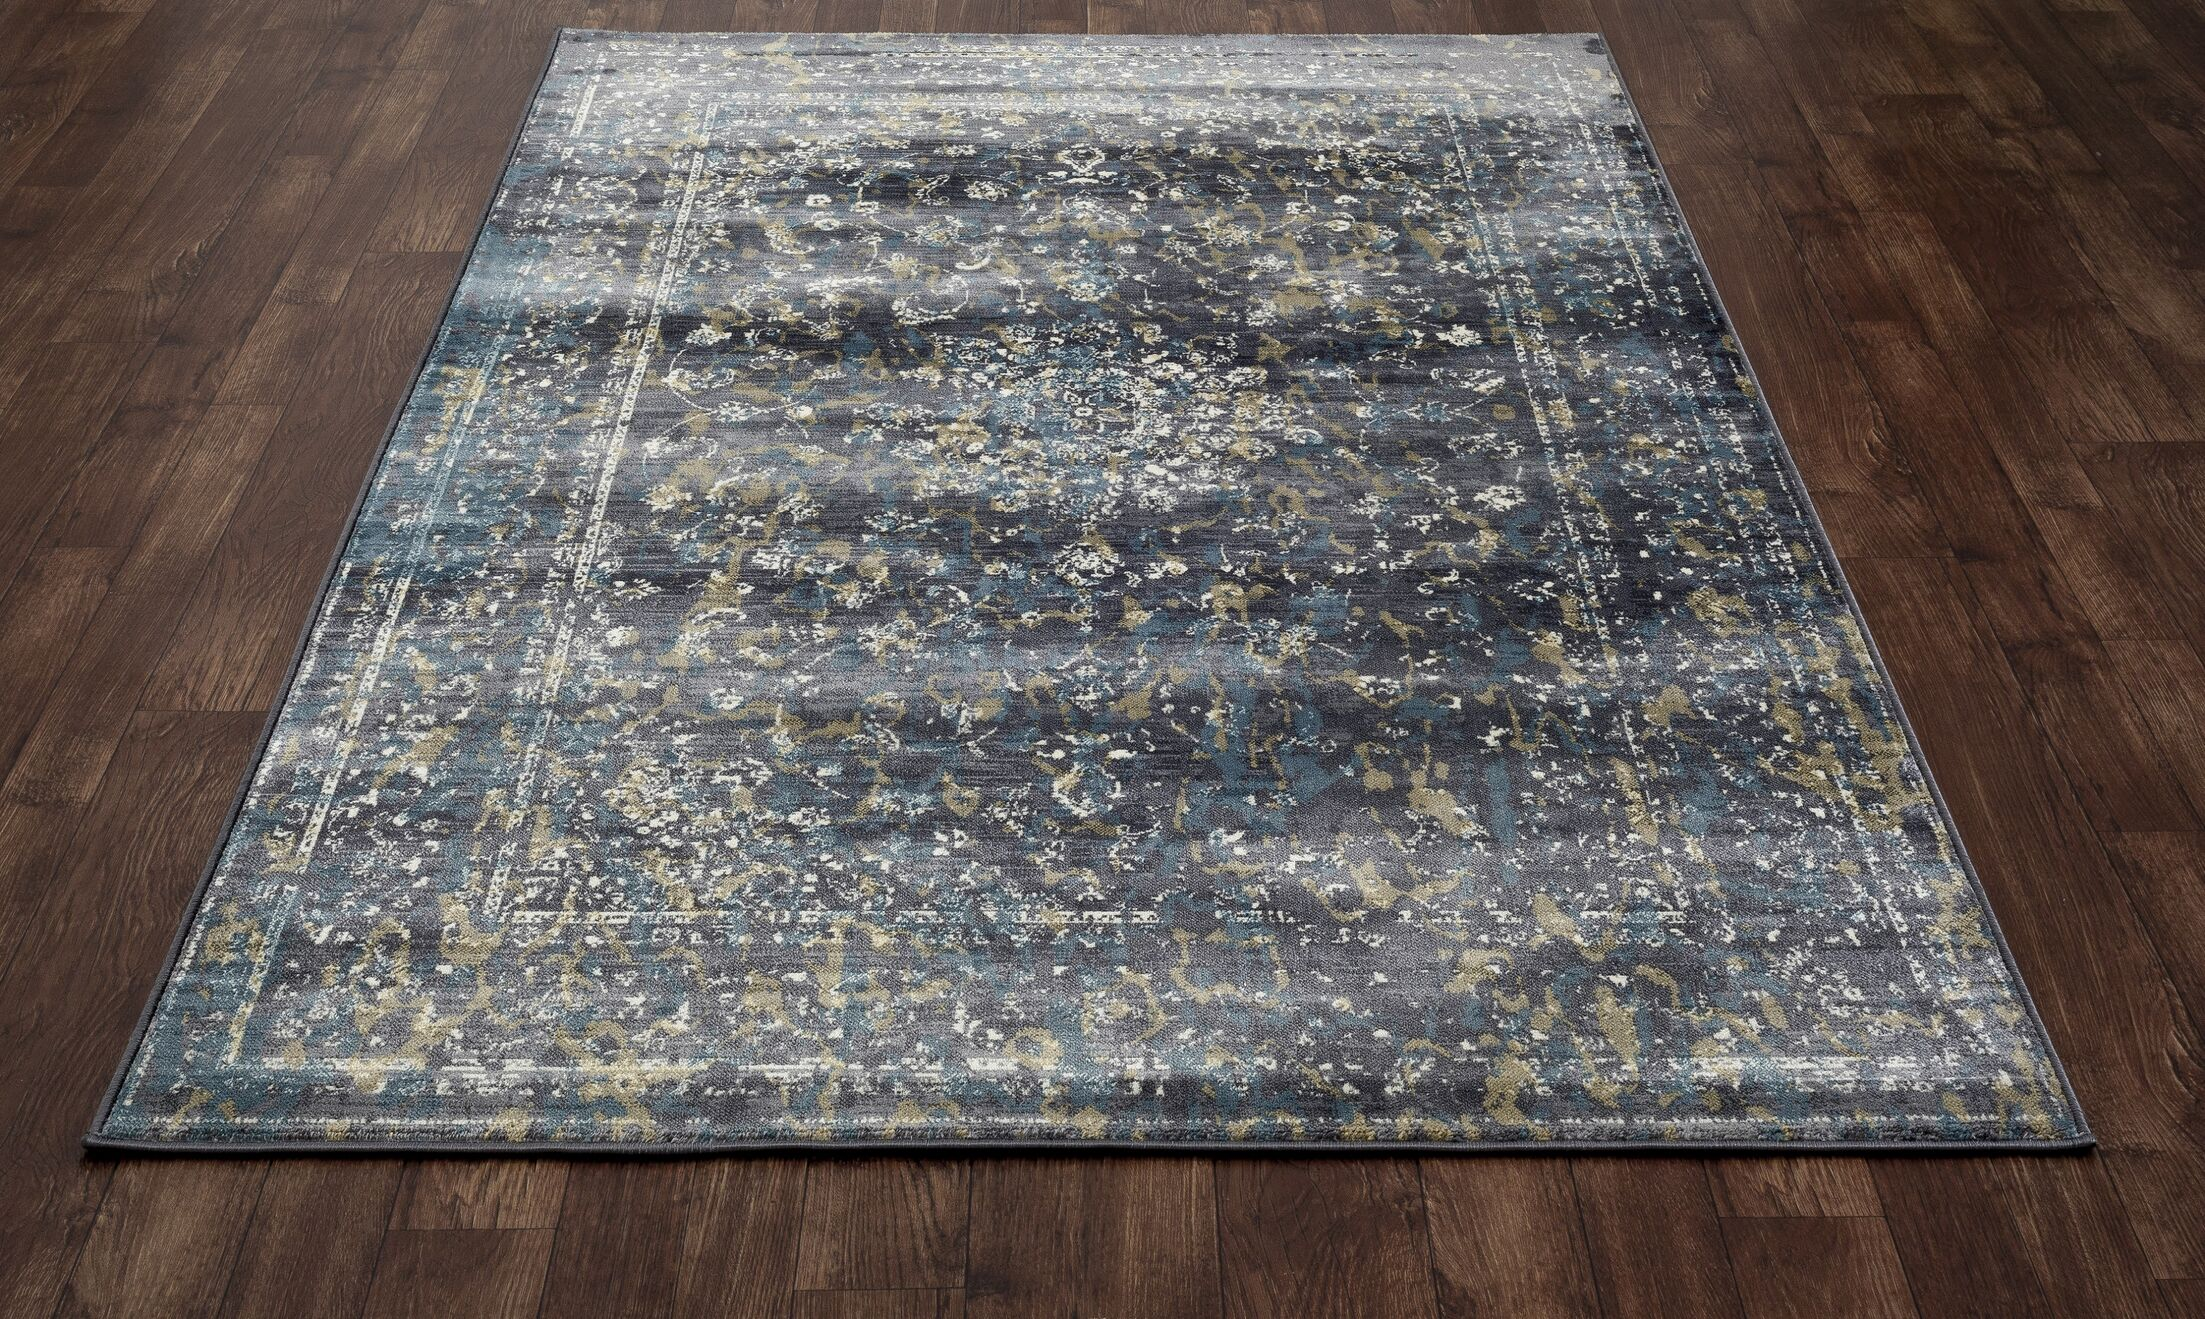 Devay Gray Indoor Area Rug Size: 5'3 x 7'7